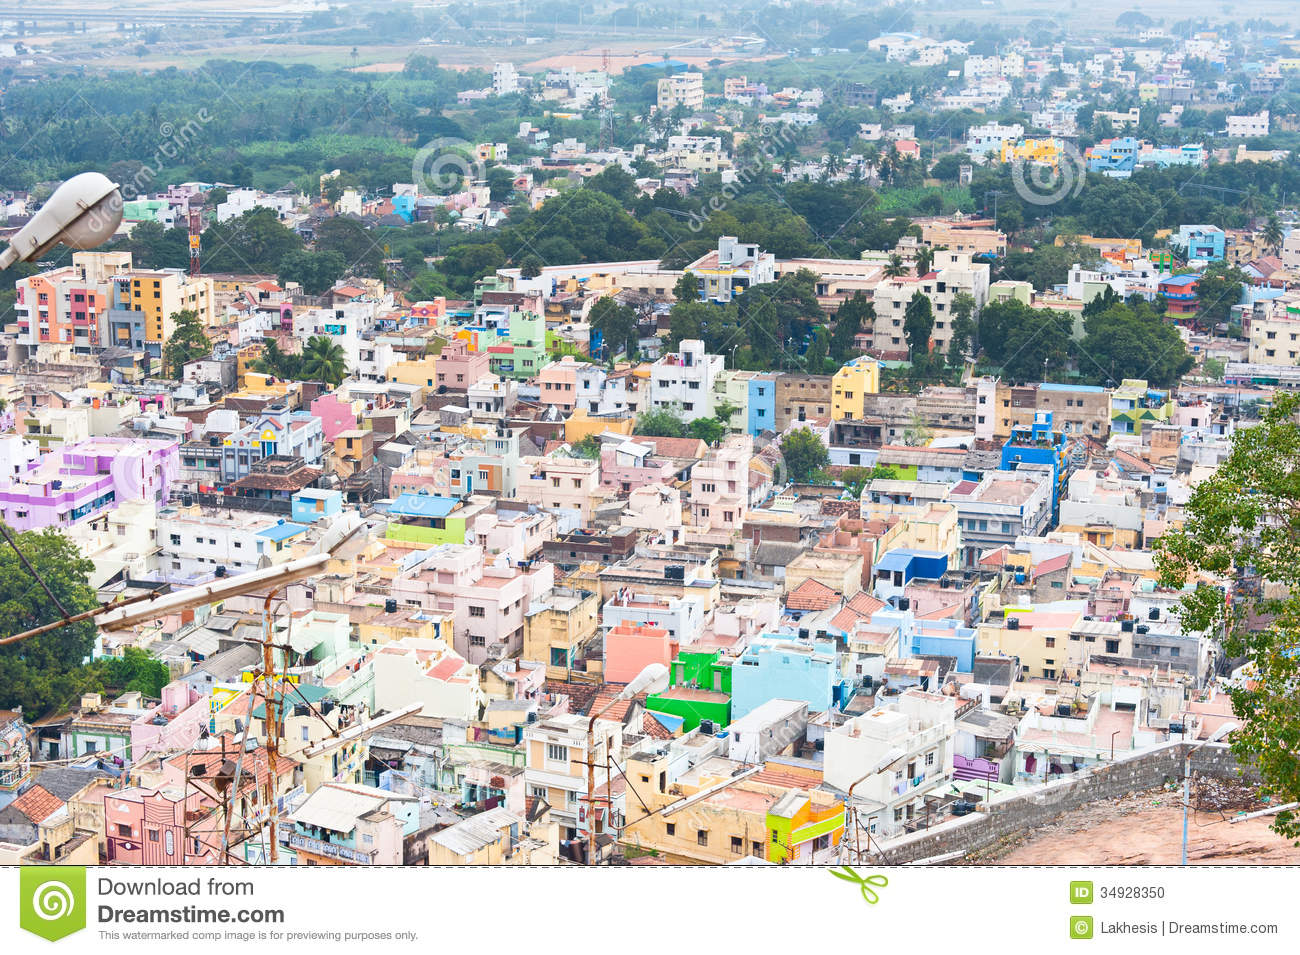 Paysage urbain de ville indienne serr e photo stock for Paysage de ville